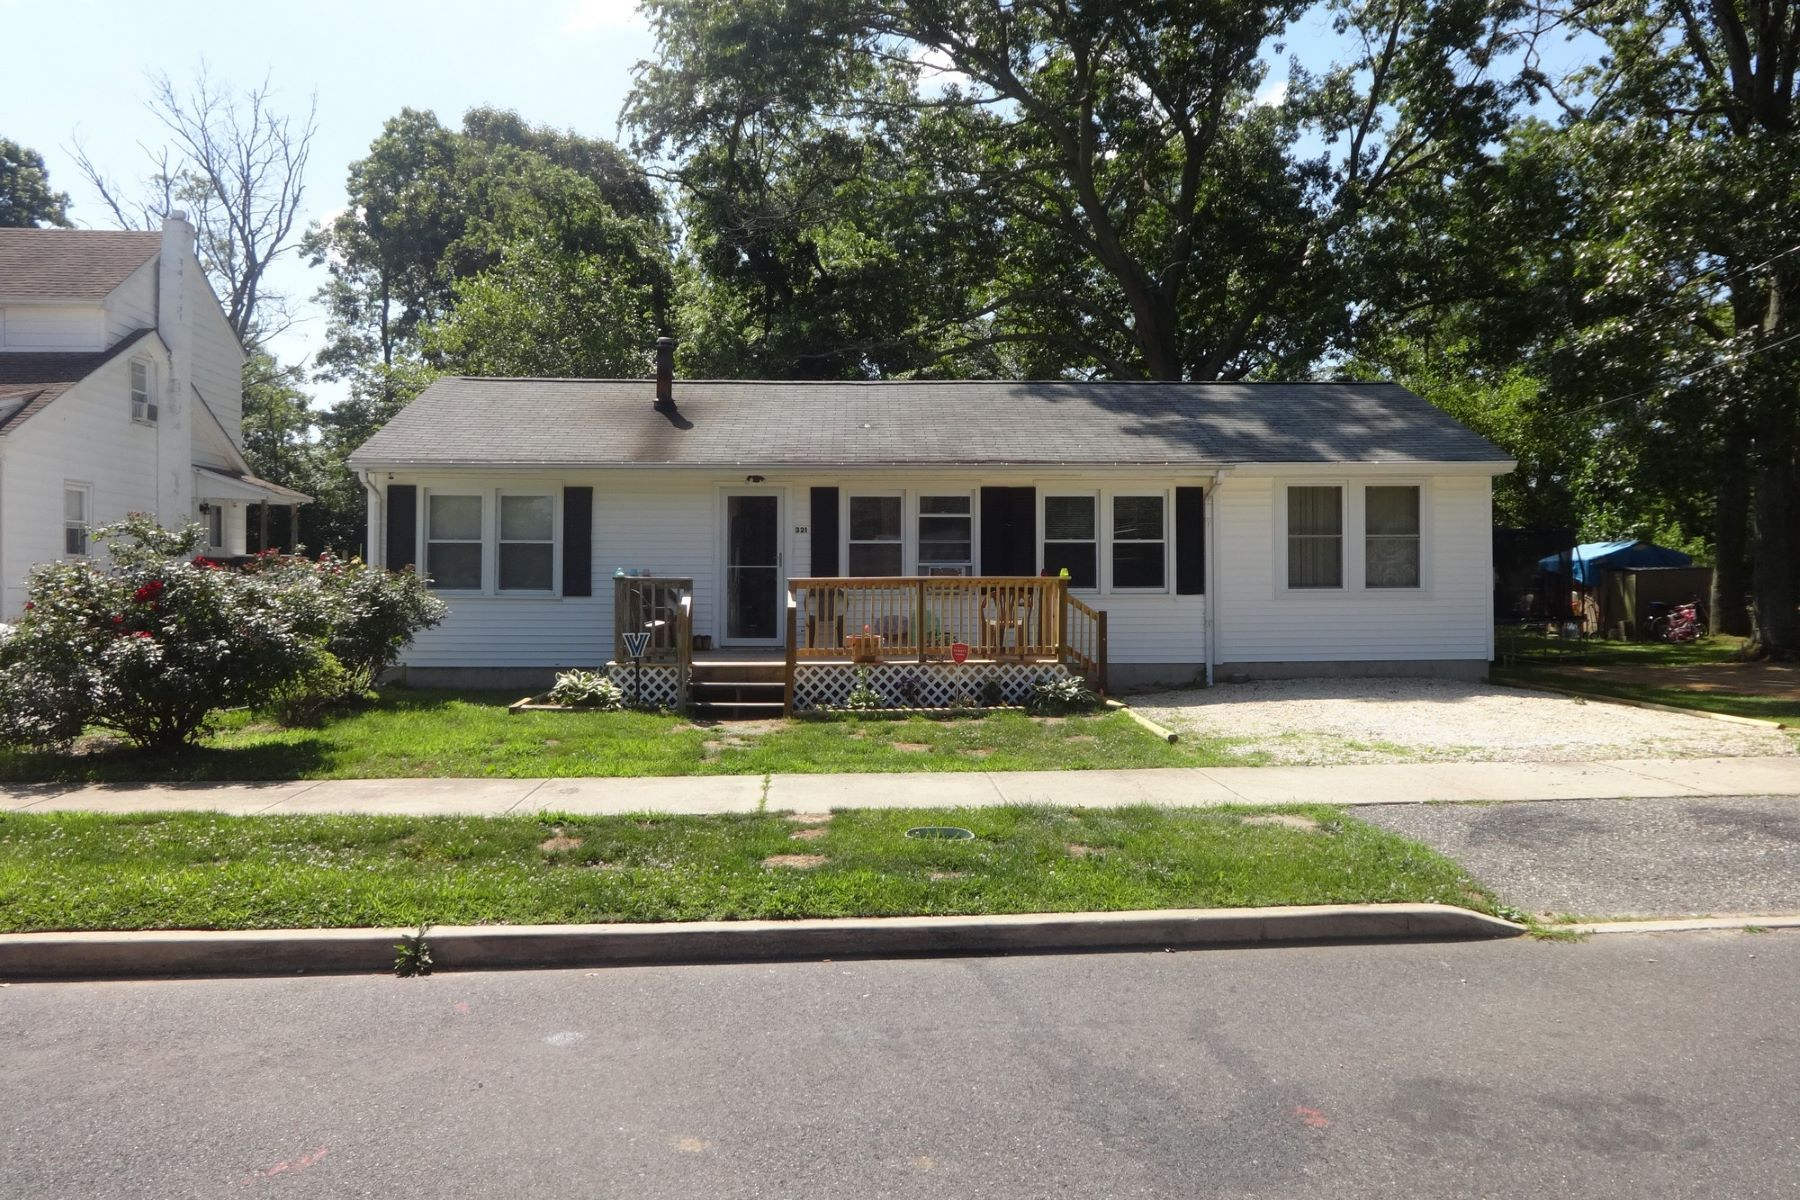 Single Family Home for Sale at Well-Maintained Rancher 321 Madison Avenue, Woodbine, New Jersey 08270 United States